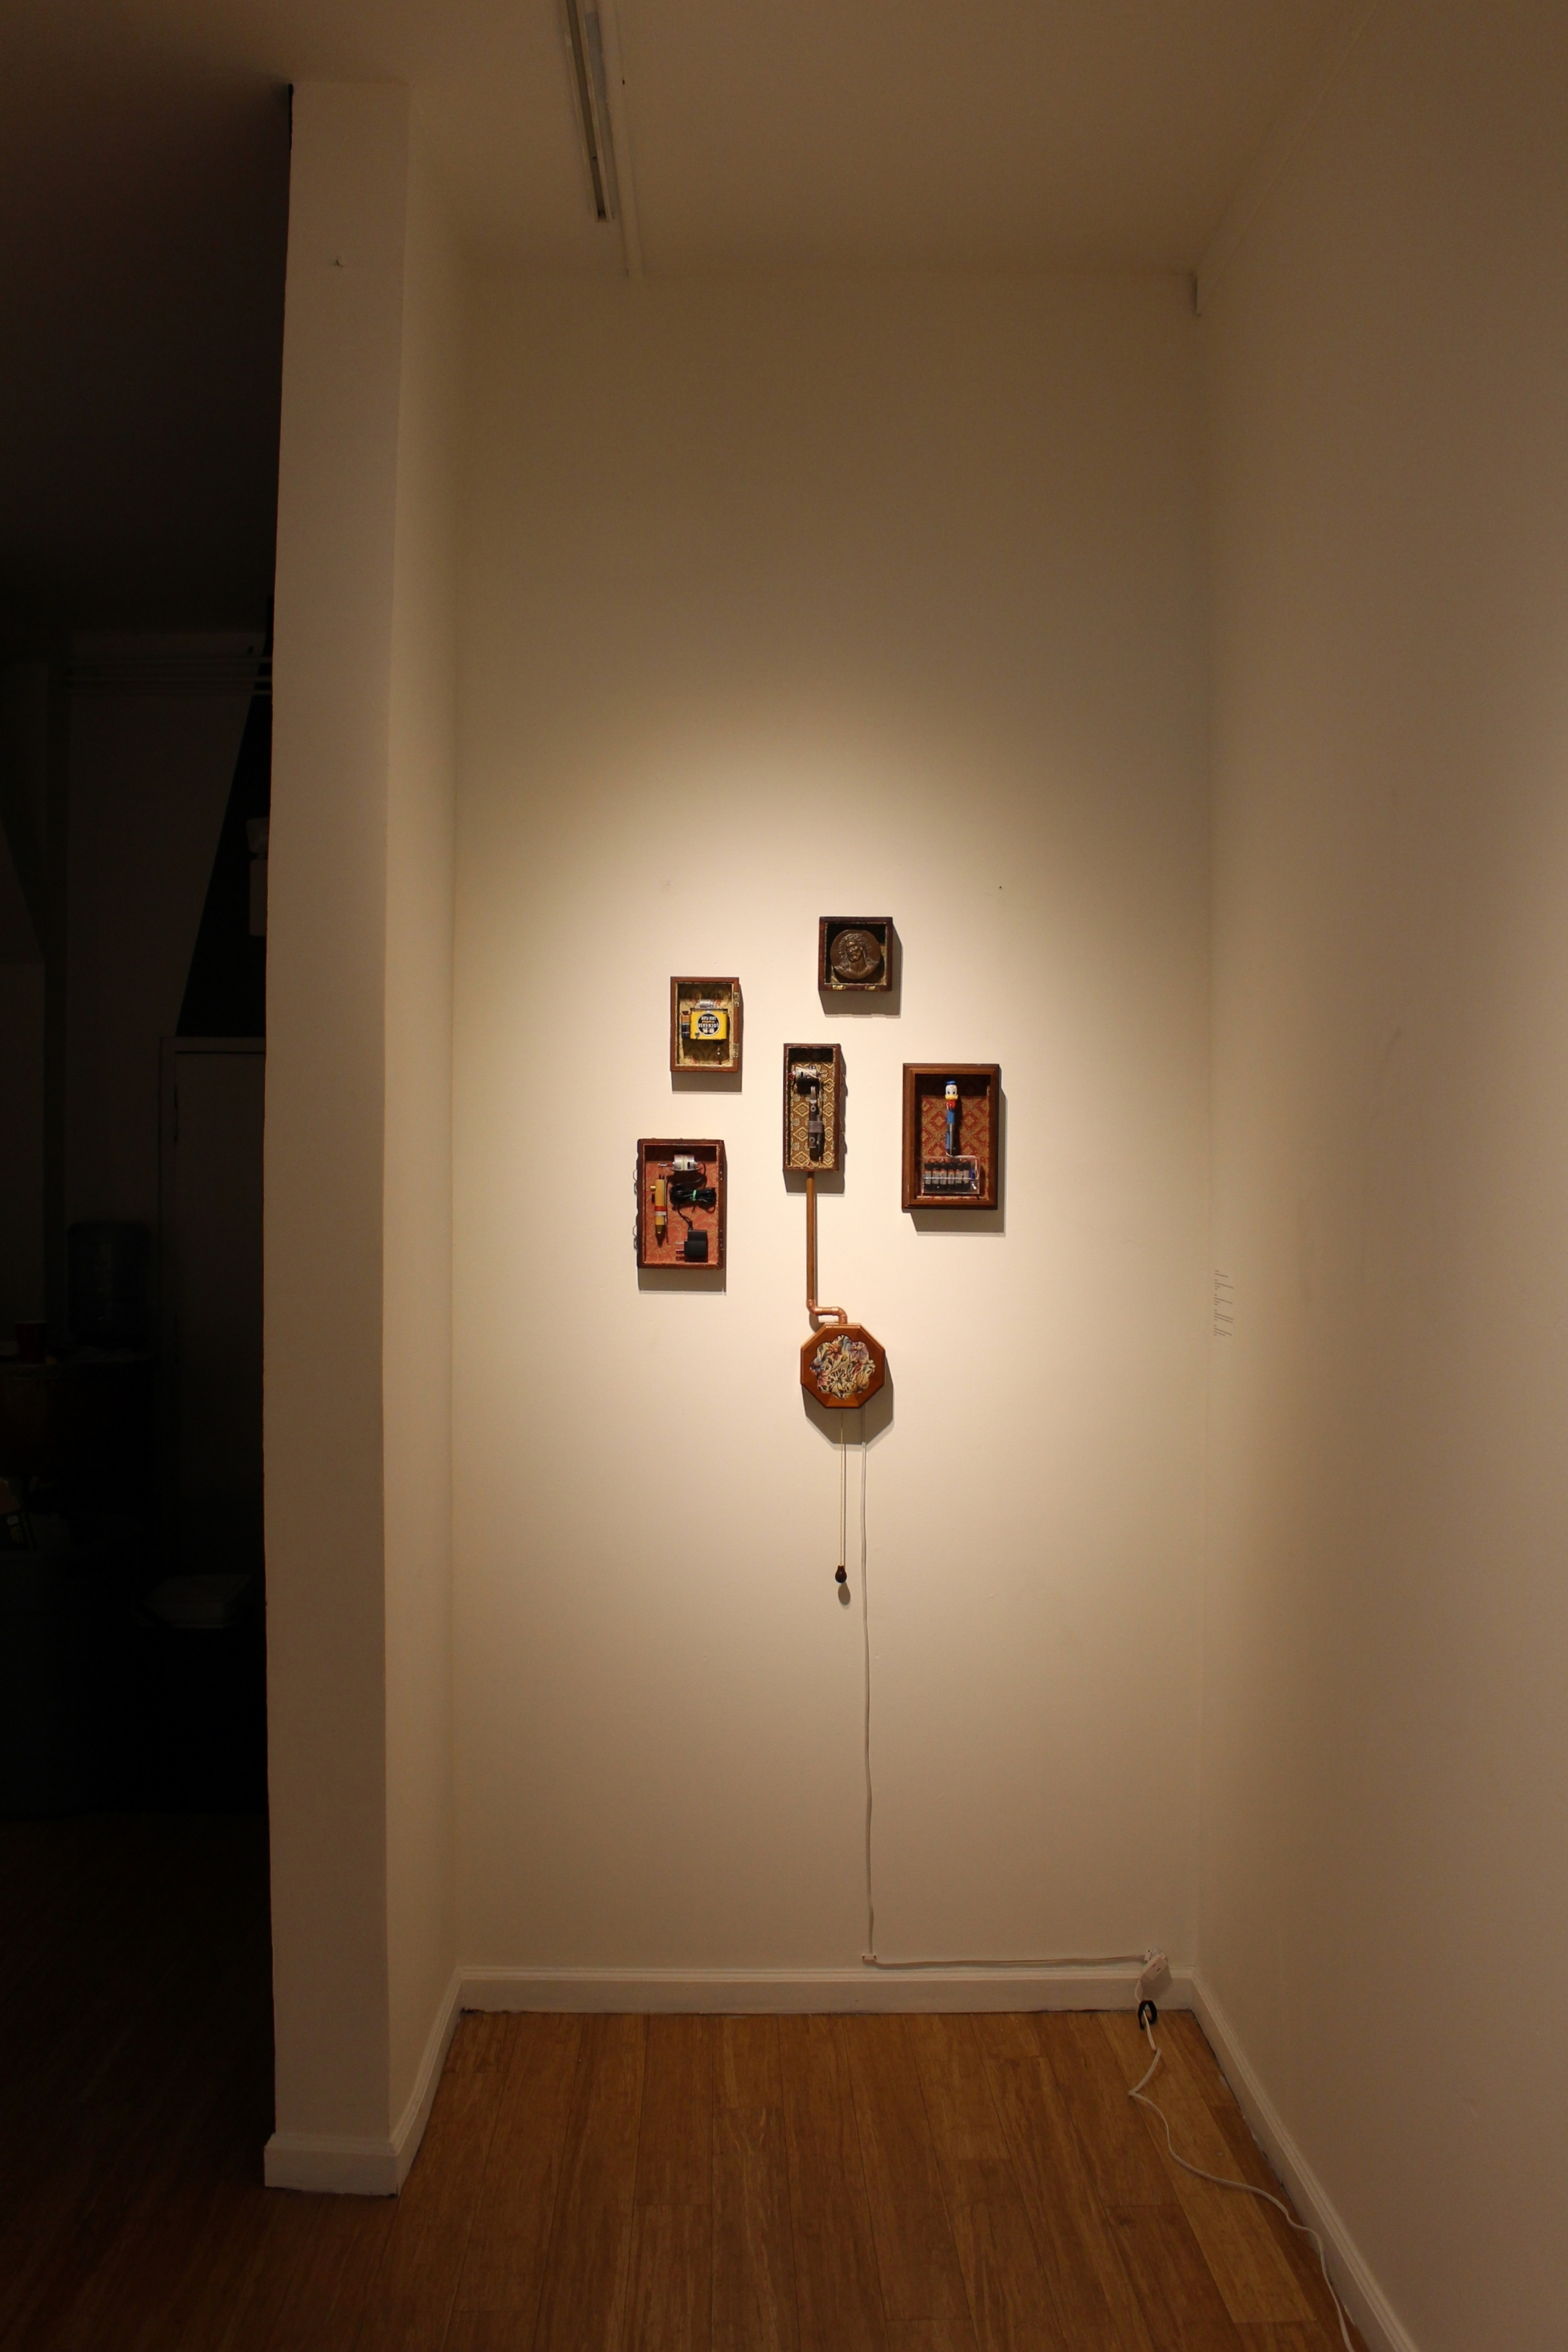 Thesis installation at Gauntlet Gallery.  All machines are fully functional, including center machine with a hanging lamp switch to turn on/off.